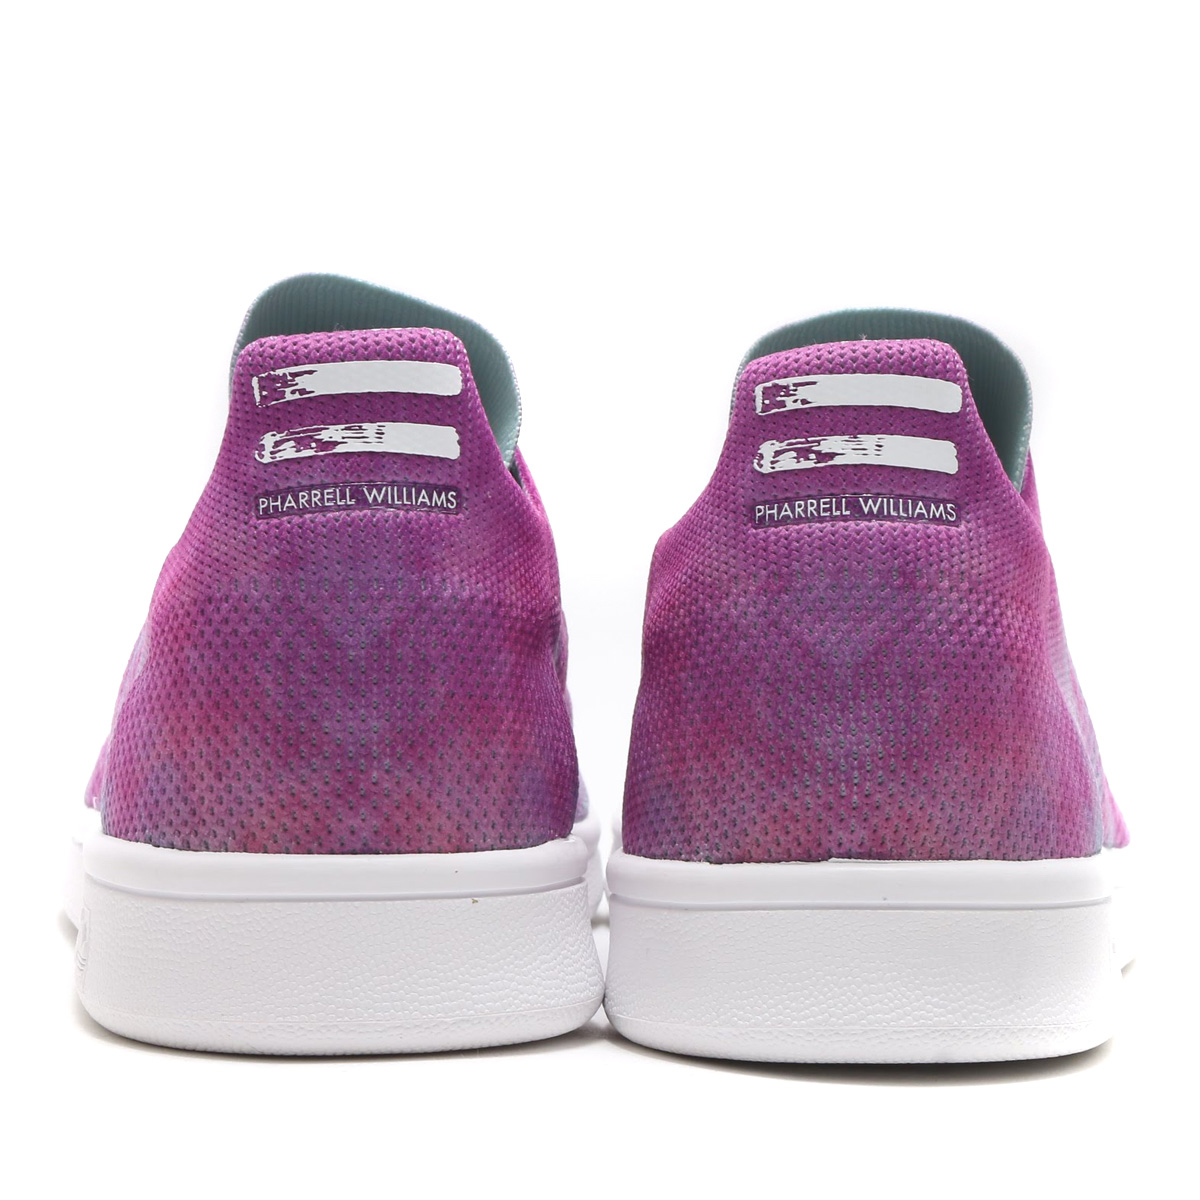 913c18a5a73ed adidas Originals PW HU HOLI STAN SMITH MC (Adidas originals Farrell Williams  HU HOLI Stan Smith BC) Chalk Coral   Running White   Running White 18SS-S